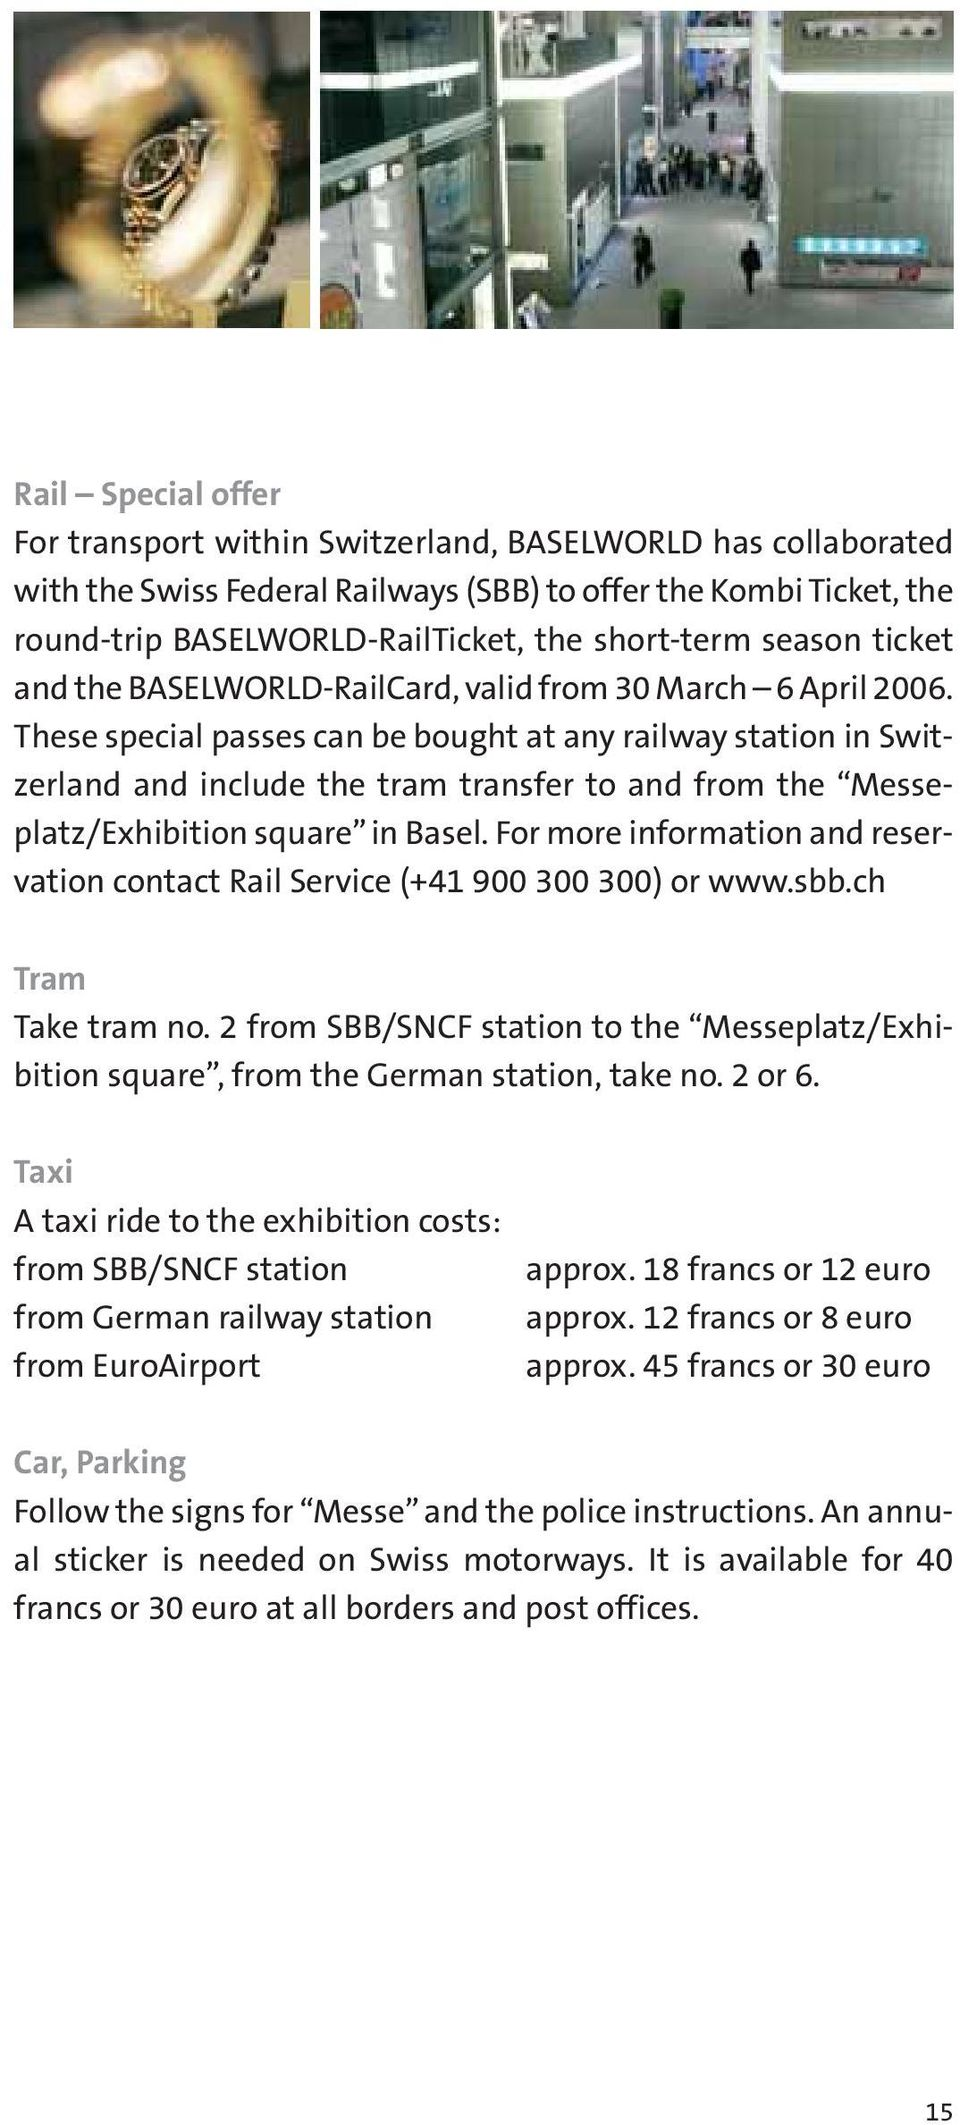 These special passes can be bought at any railway station in Switzerland and include the tram transfer to and from the Messeplatz/Exhibition square in Basel.